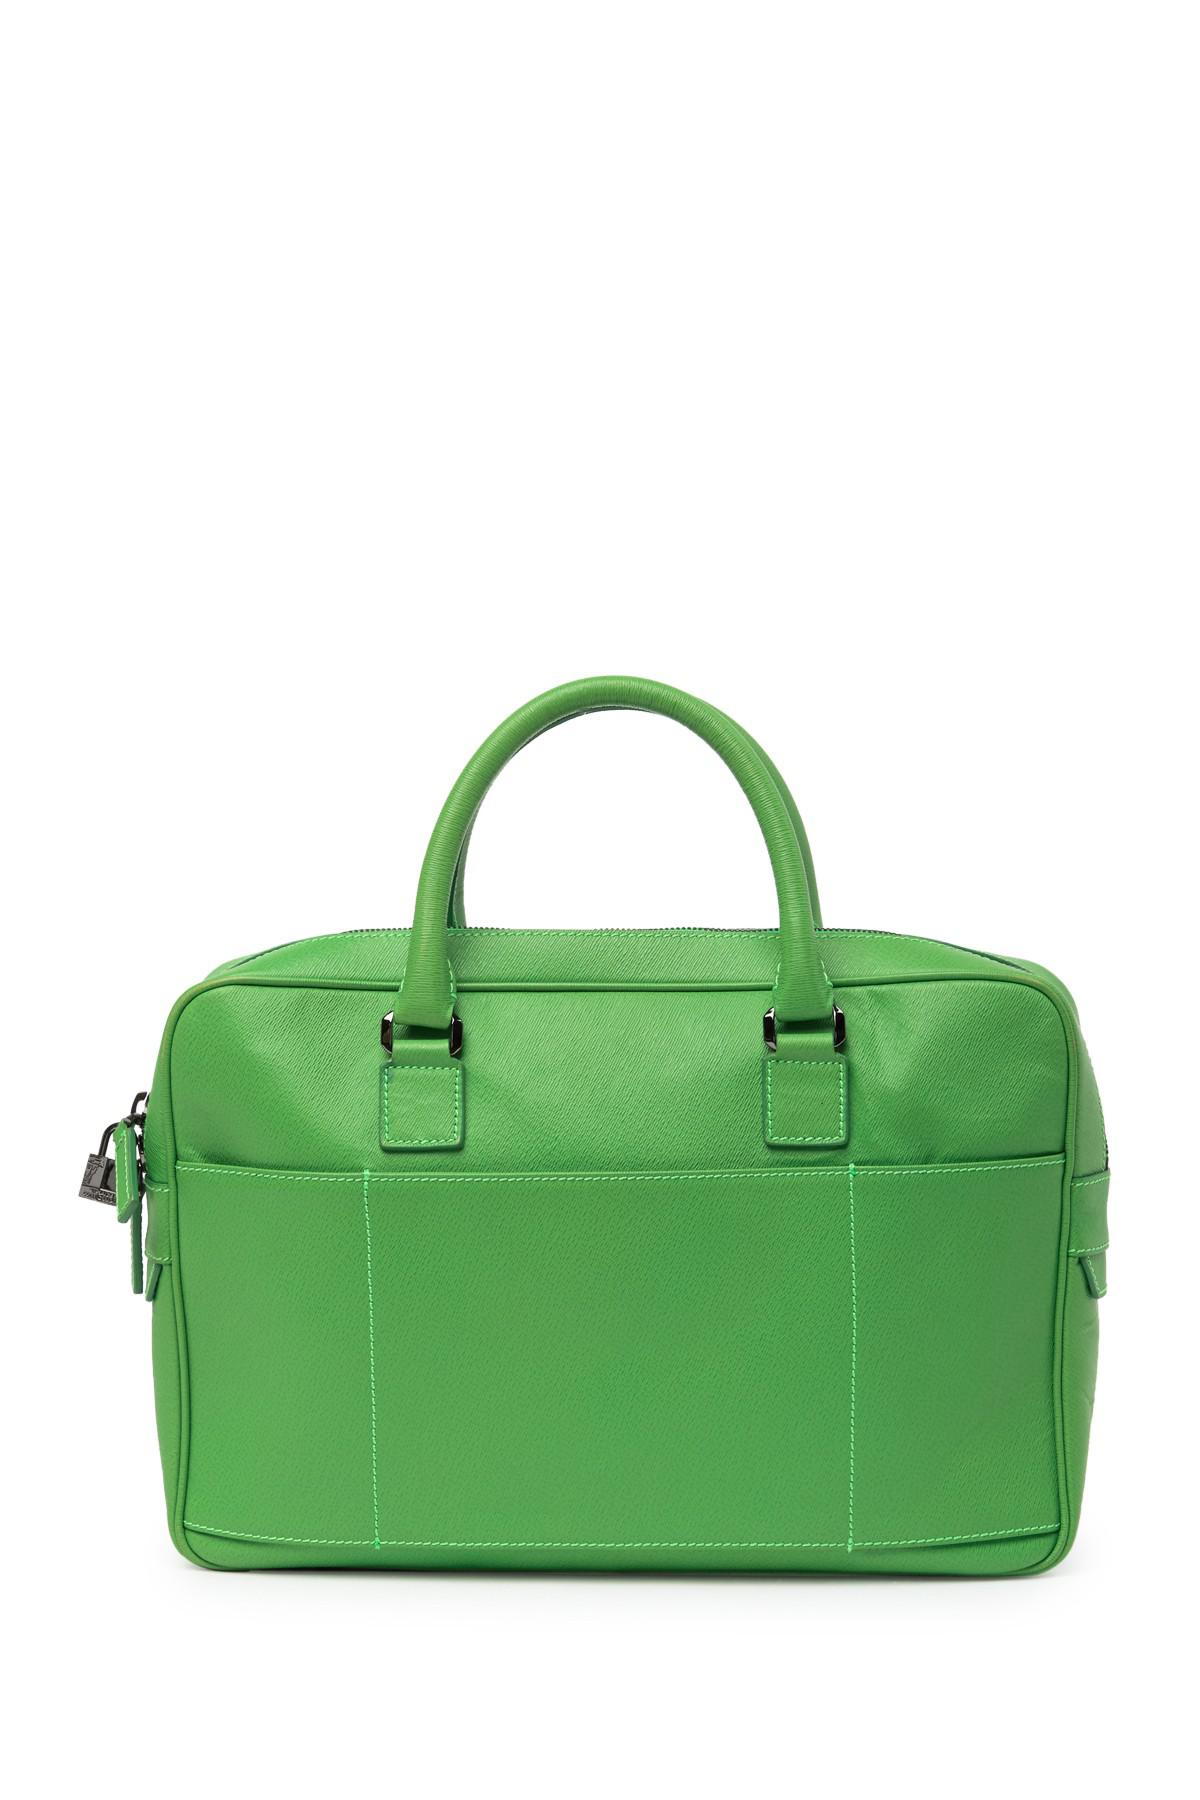 903f68d07384 Lyst - Versace Leather Travel Bag in Green for Men